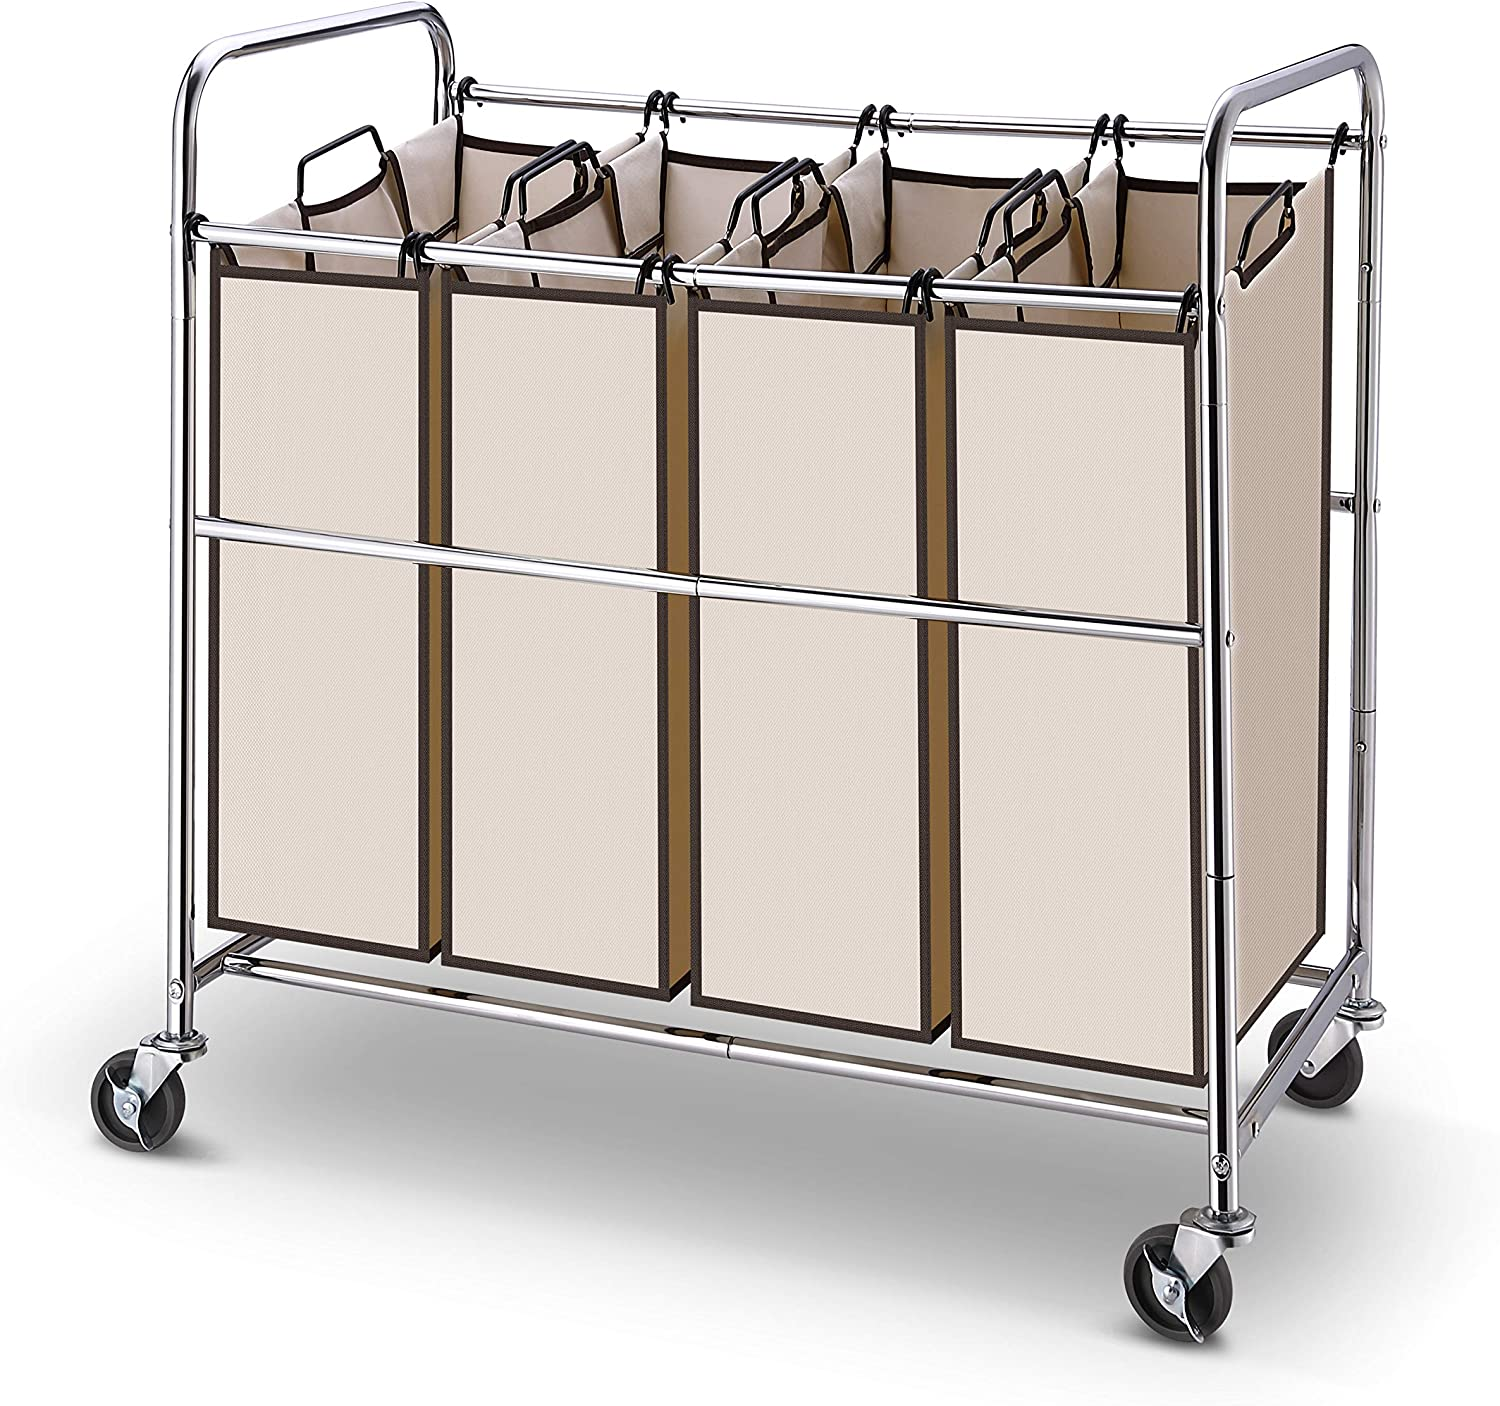 Simple Trending Heavy Duty 4-Bags Laundry Hamper Sorter Cart with Rolling Wheels, Chrome